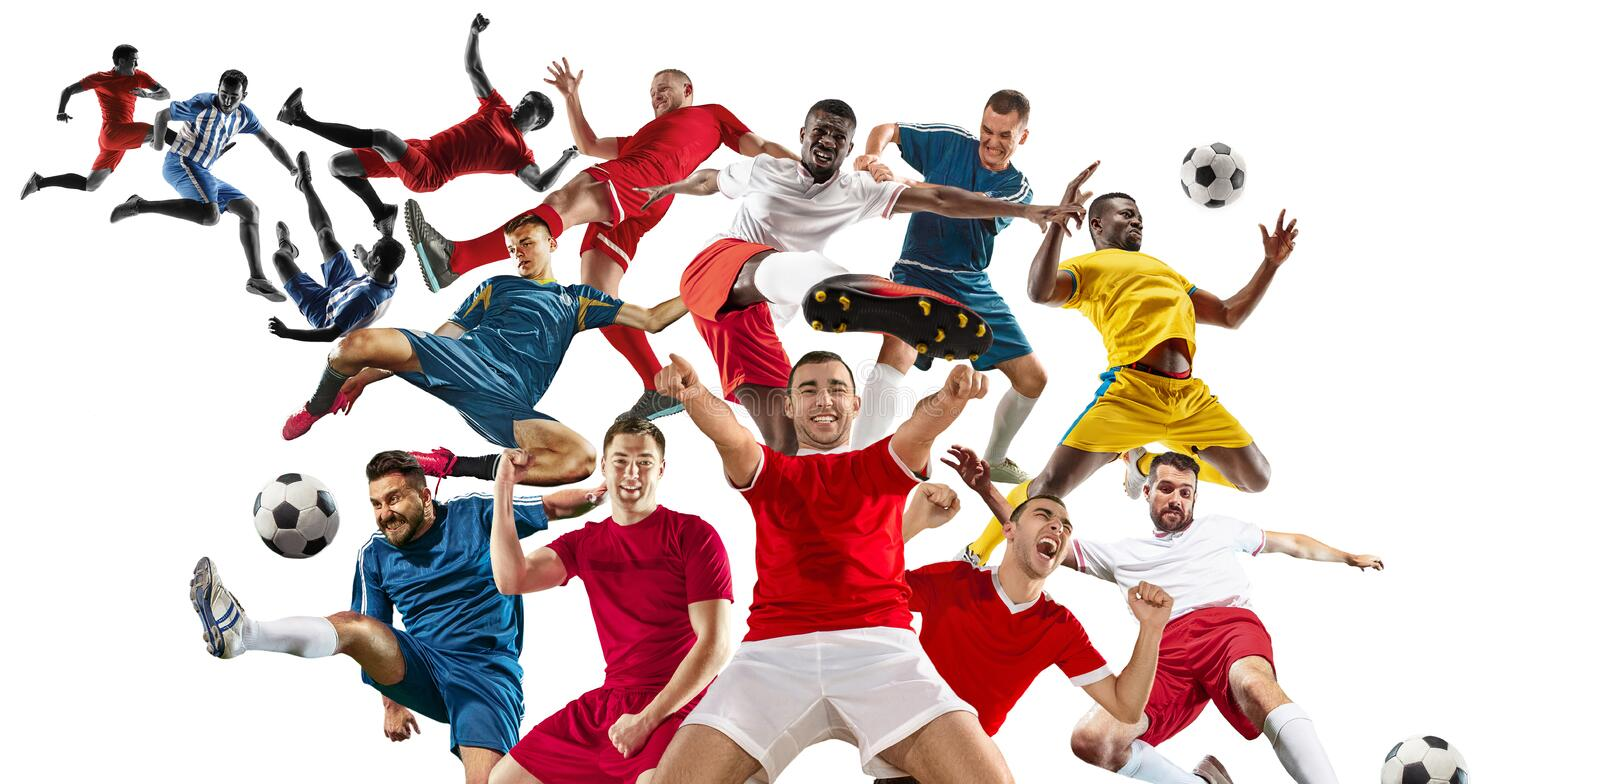 Professional men - football soccer players with ball isolated white studio background royalty free stock images